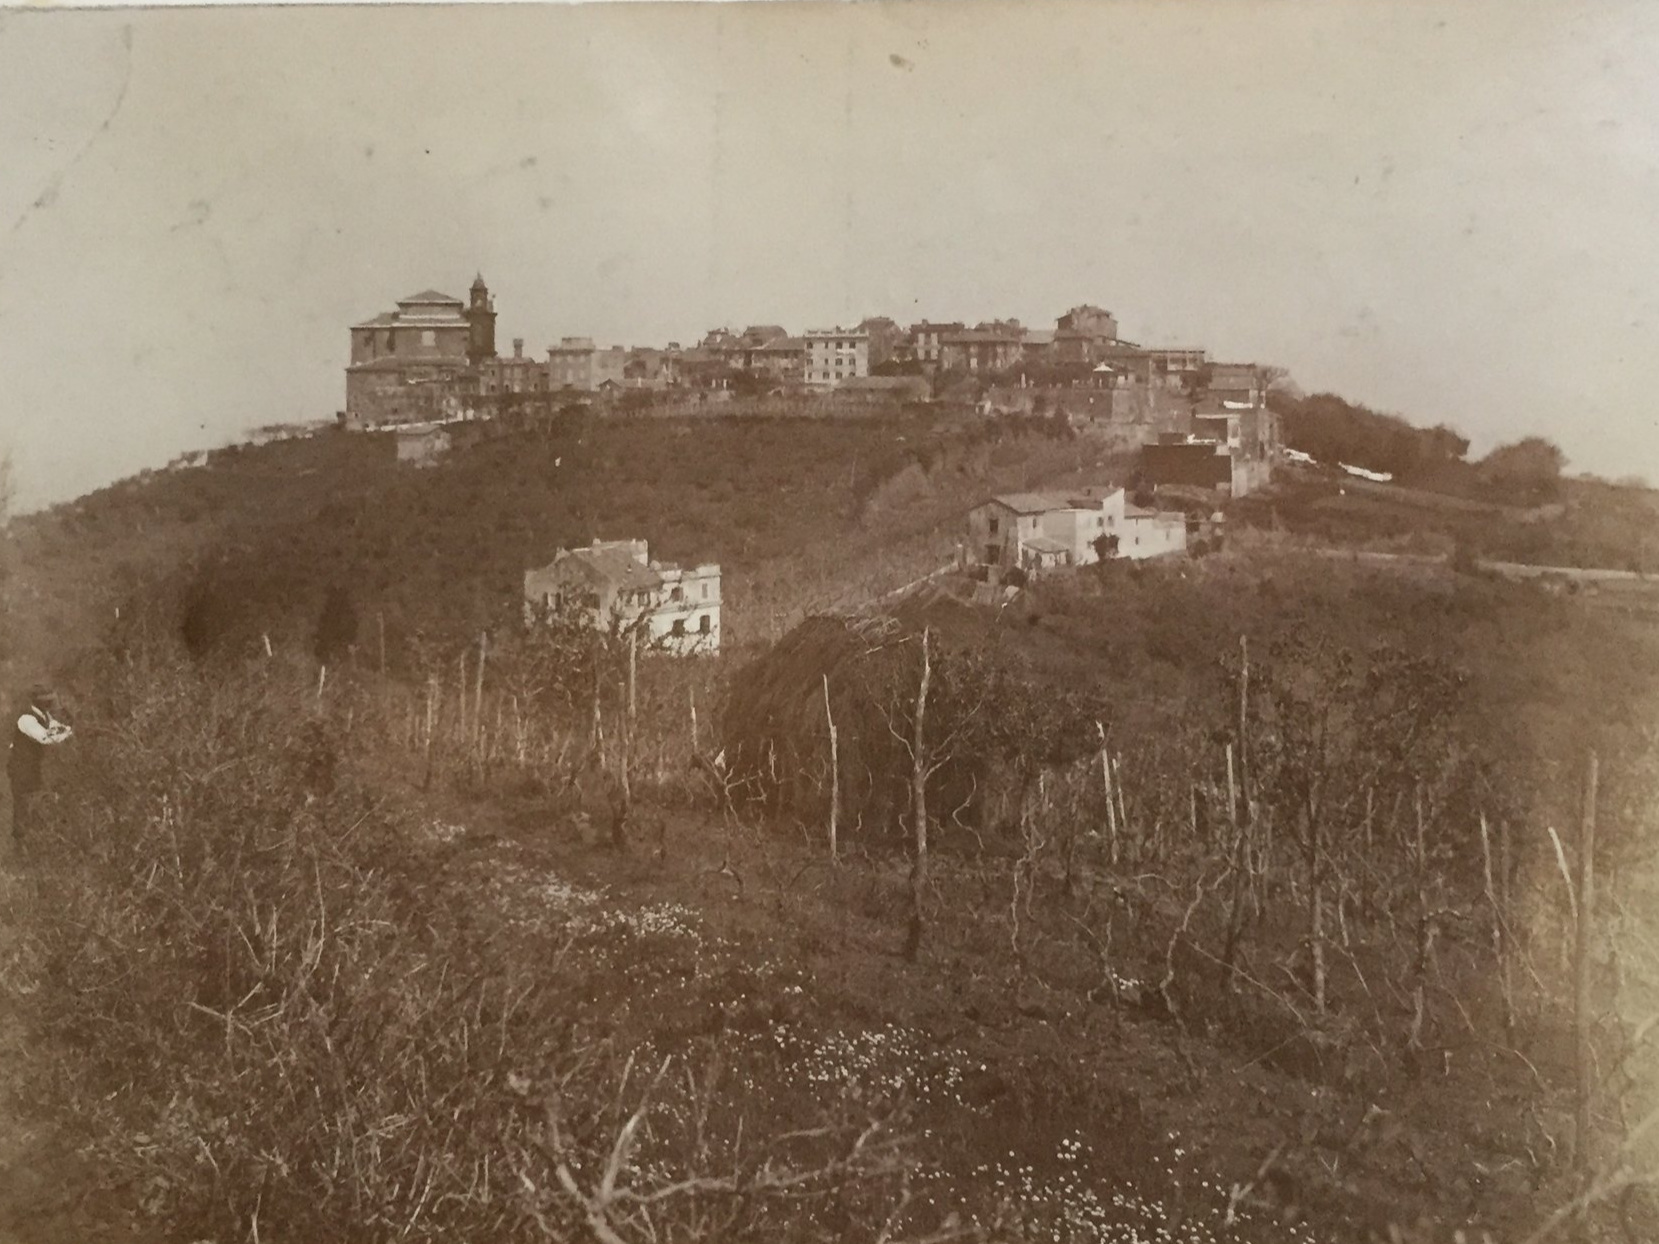 Monte Porzio Catone, 1909   All of the images of Monte Porzio below are taken from an album of photographs of 1909 and 1910 in the Venerable English College Archives.